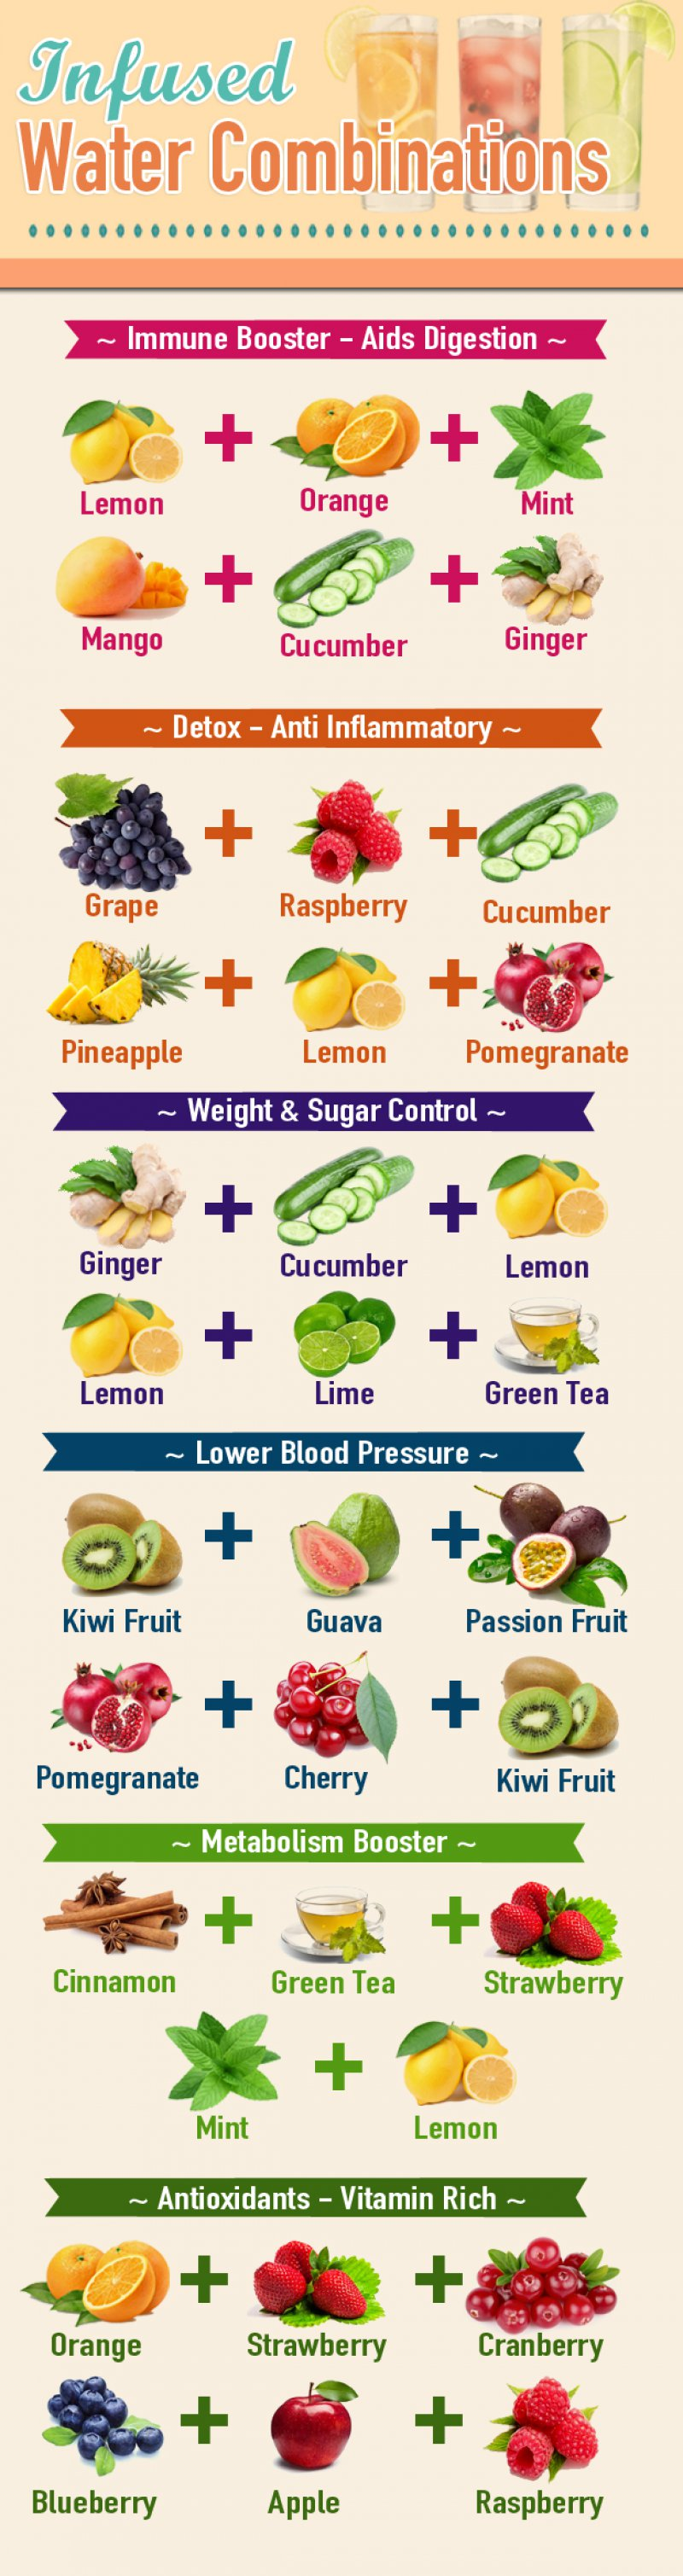 fruit_infusion_infographic_copy__1440579751_68844